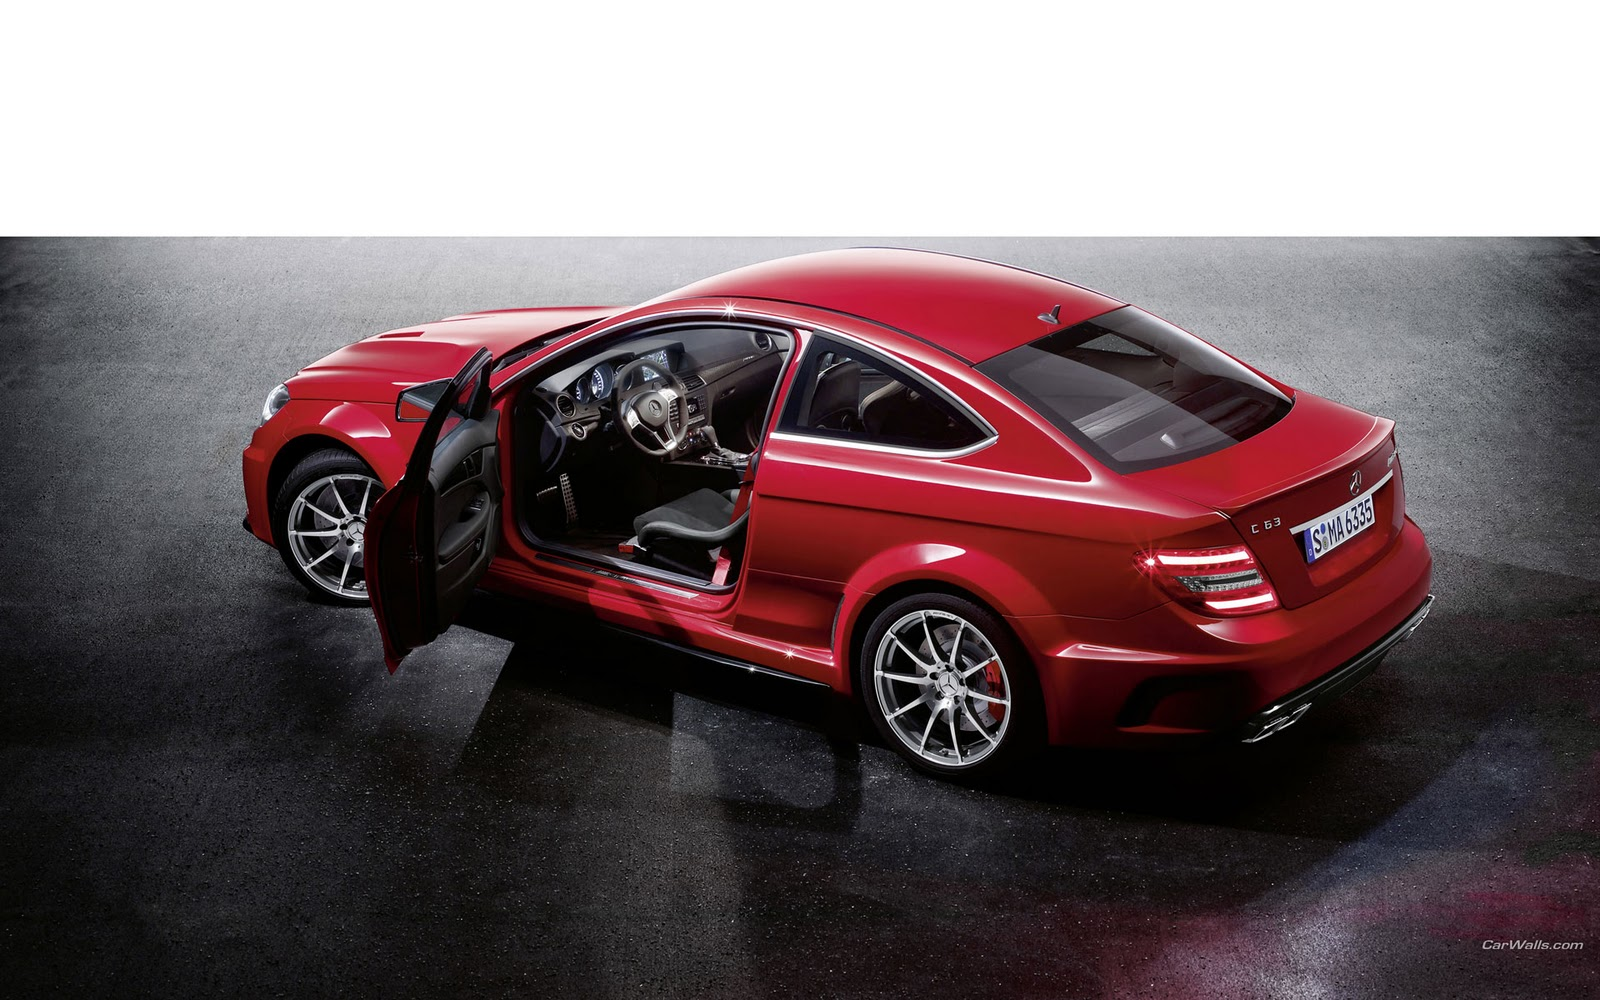 Full hd exotic car wallpapers 2012 mercedes benz c63 amg for 2012 mercedes benz c63 amg coupe black series